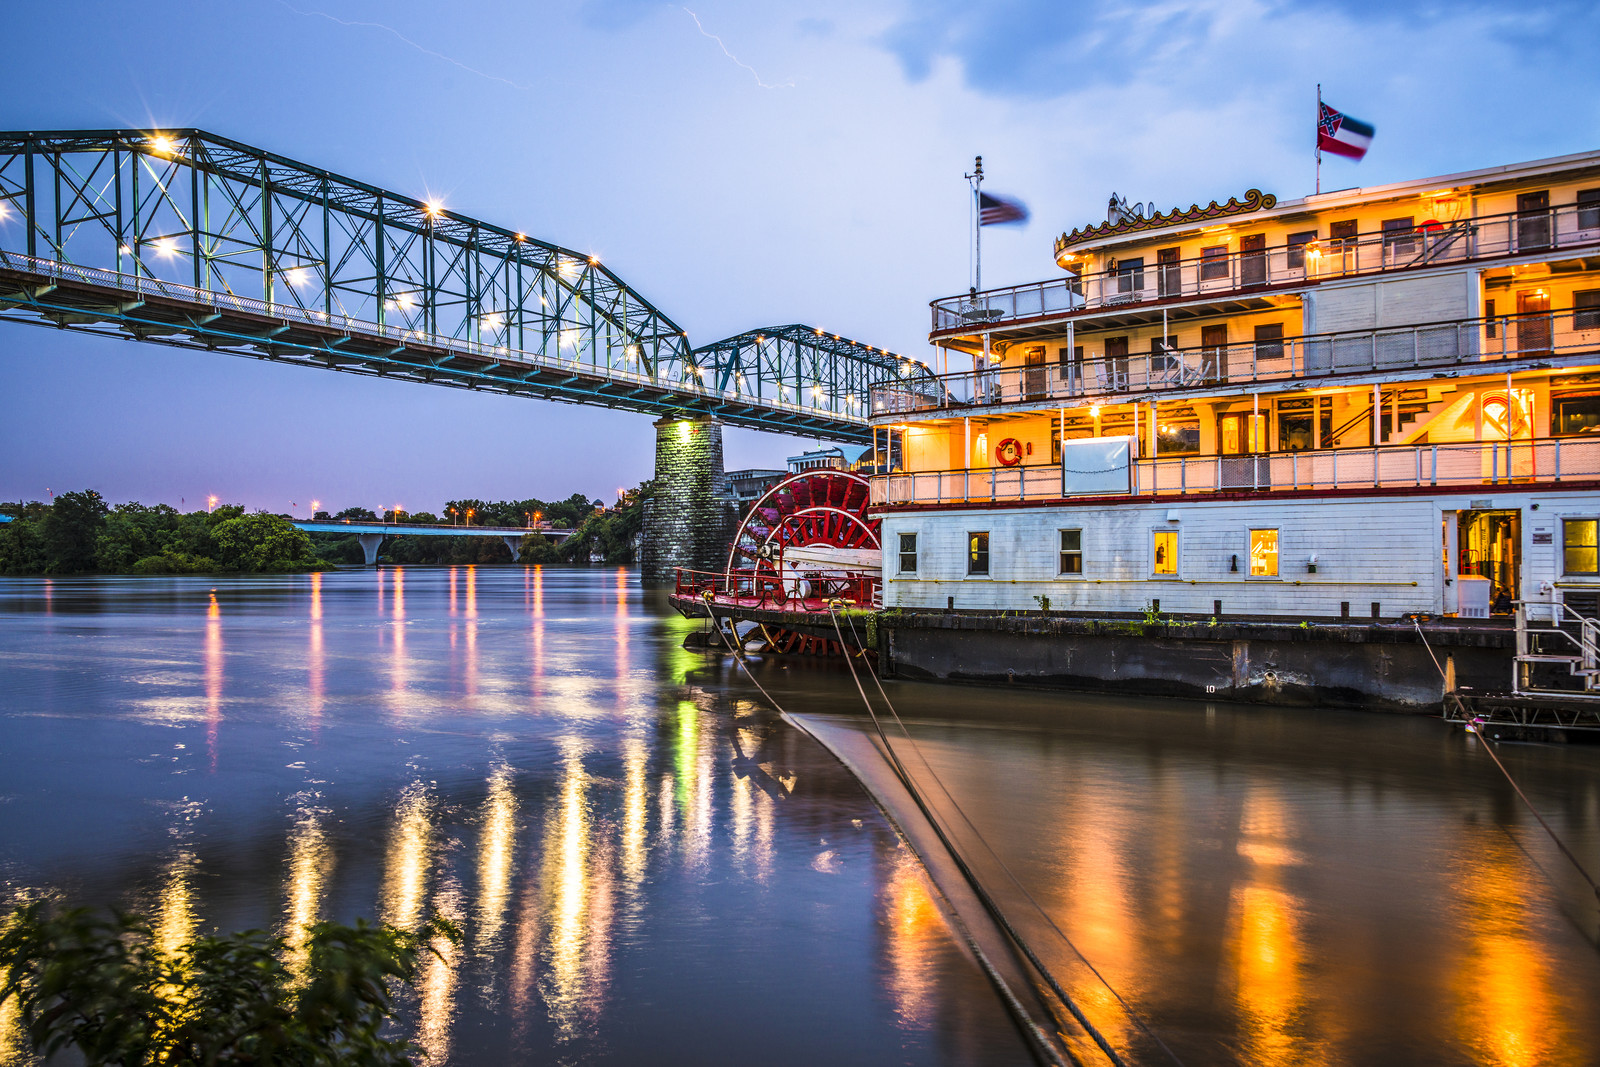 Chattanooga paddleboat on the river in the evening with the lights of the boat reflecting ff the water.  A bridge is on the left side if the photo